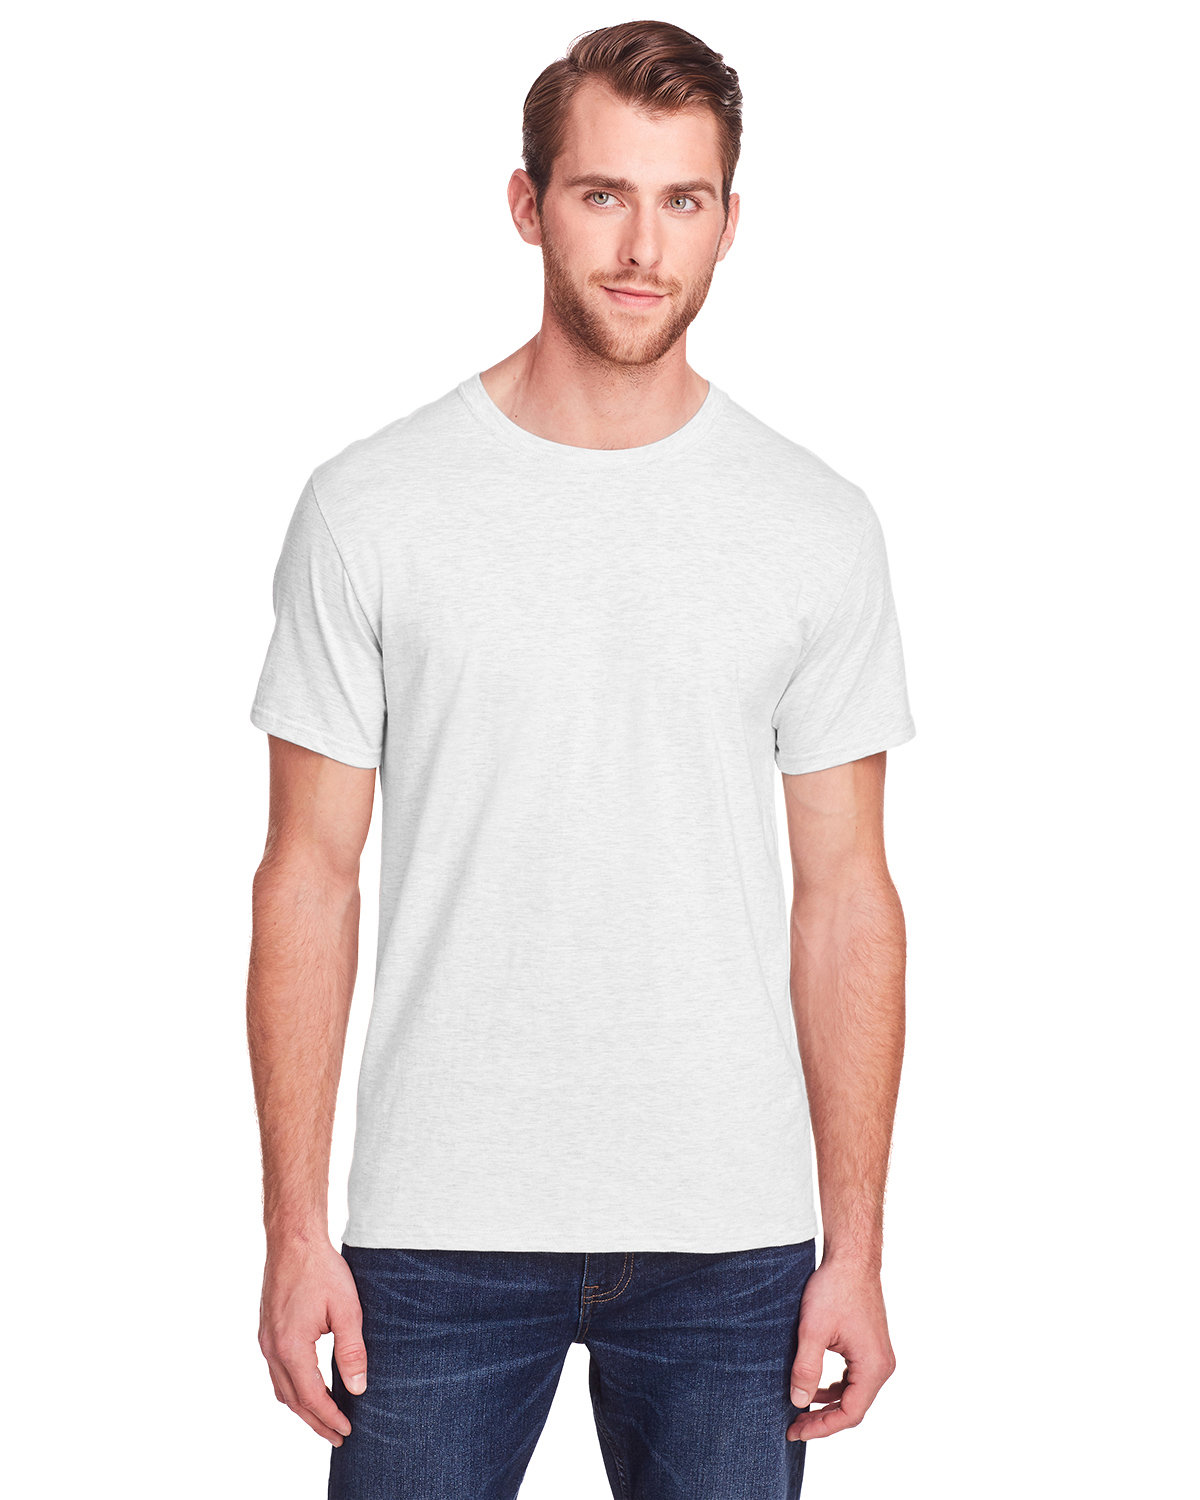 Fruit of the Loom Adult ICONIC™ T-Shirt WHITE